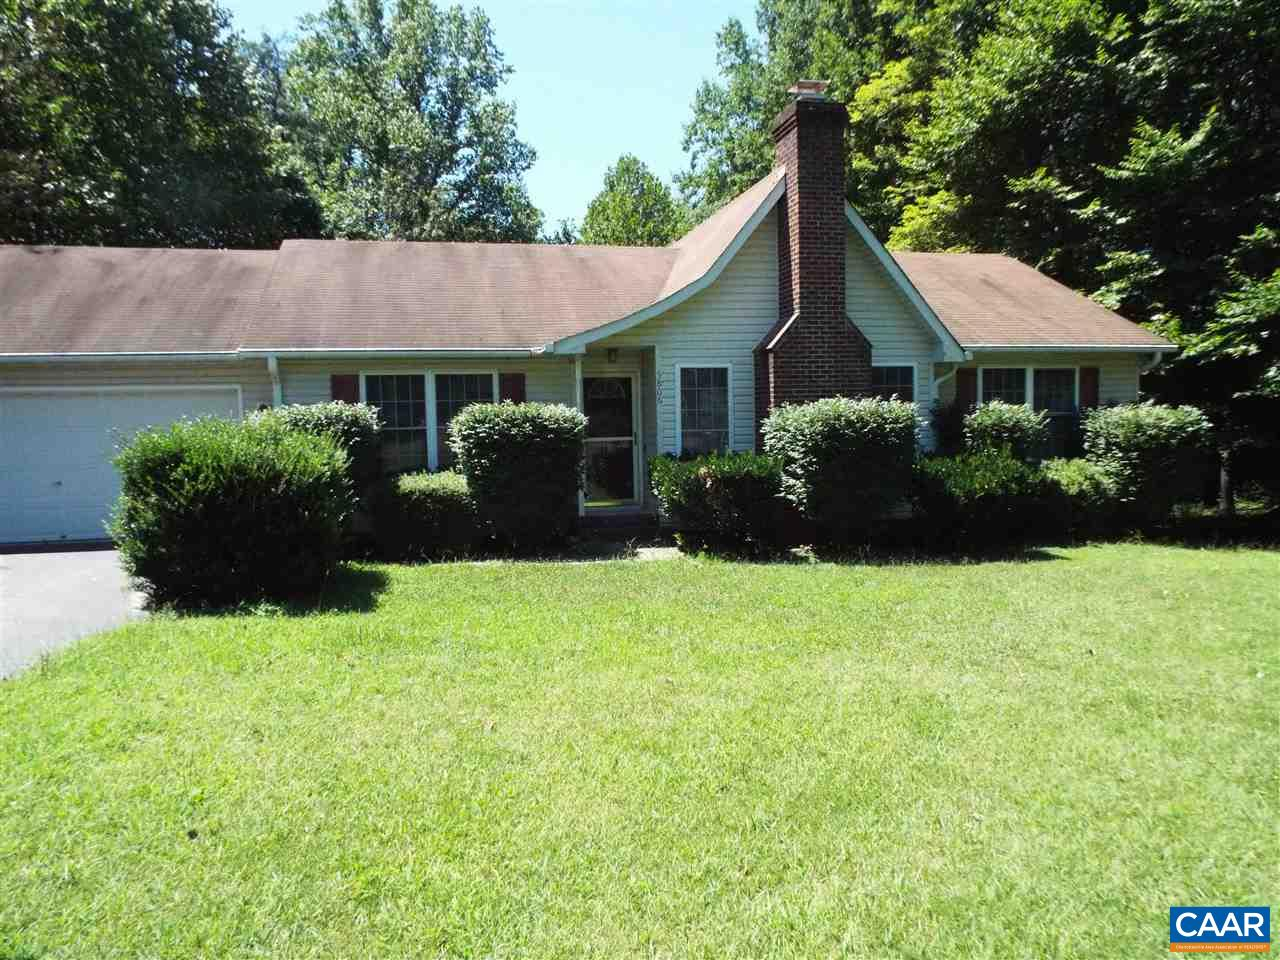 Single Family Home for Sale at 5806 DOGWOOD TREE Lane 5806 DOGWOOD TREE Lane Mineral, Virginia 23117 United States